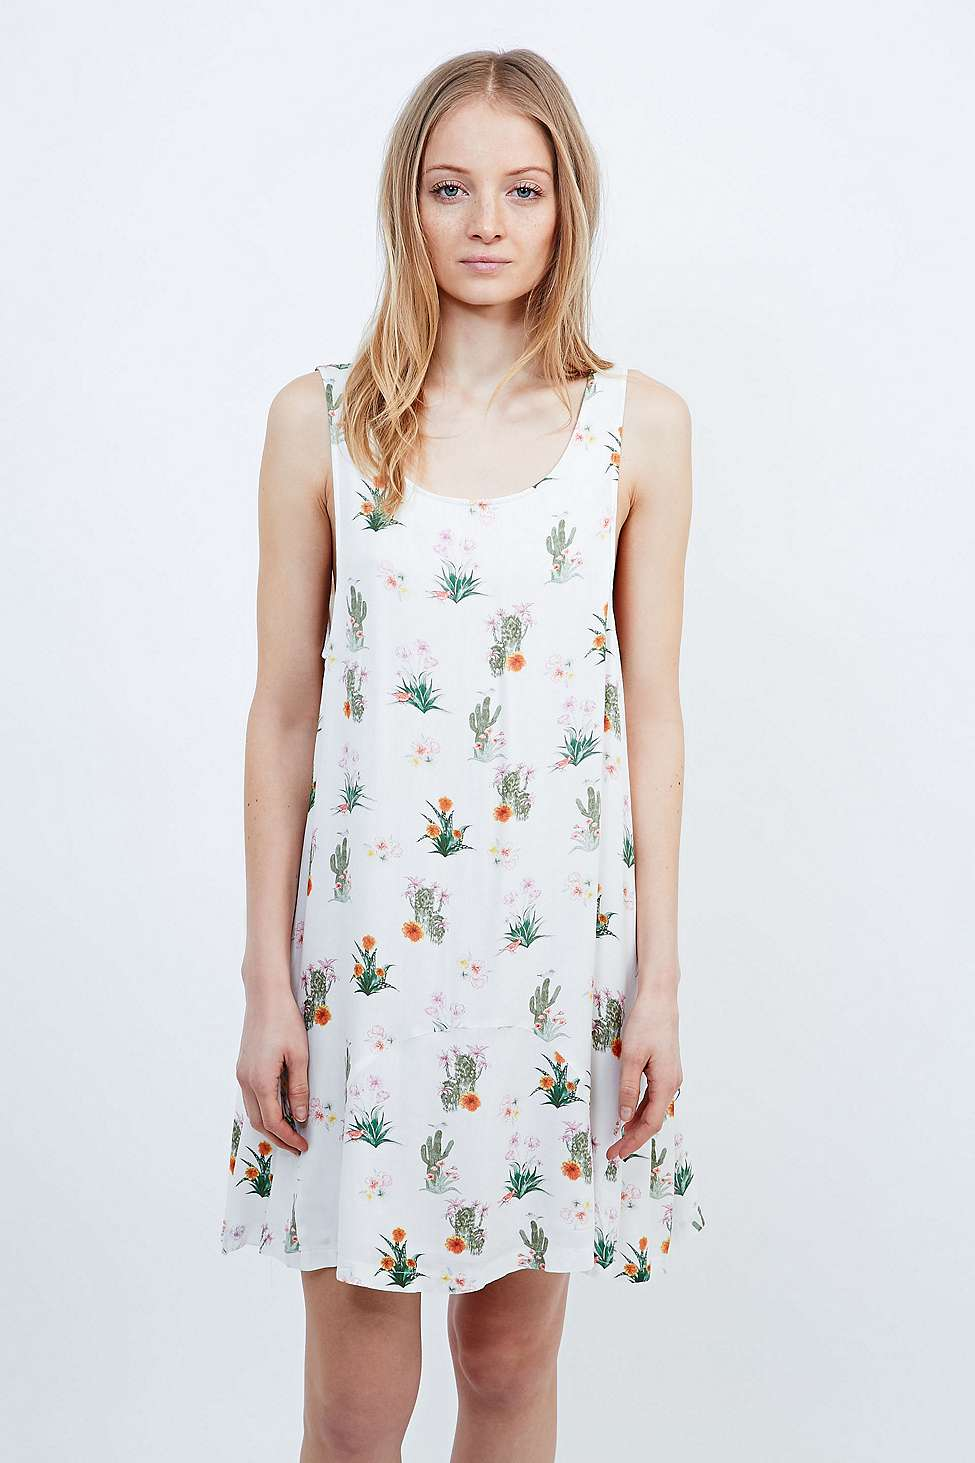 How Sweet Cactus Dress in White £45 by Somedays Lovin' from Urban Outfitters